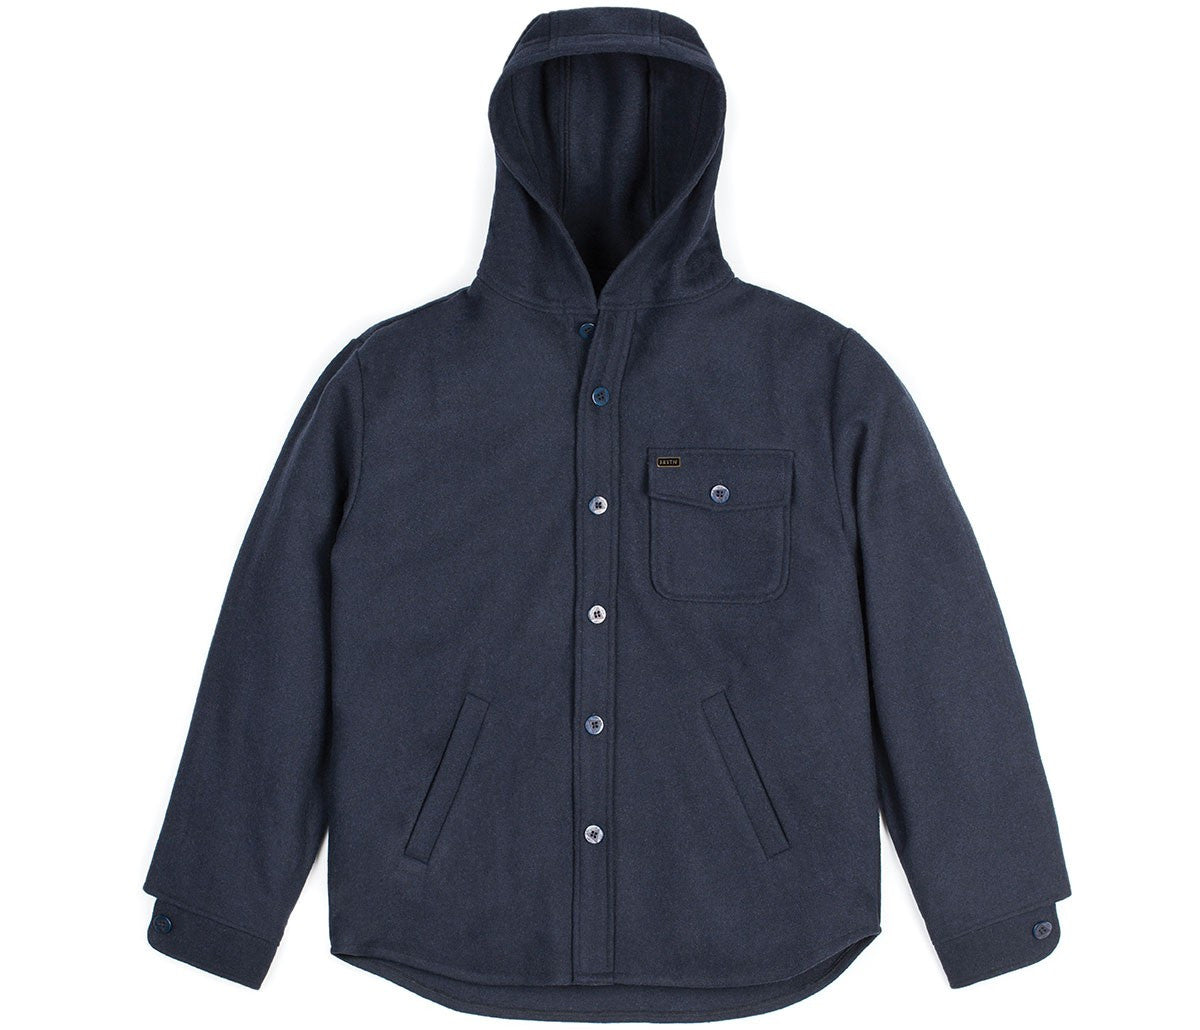 Brixton - Compass Hooded Men's Jacket, Navy - The Giant Peach